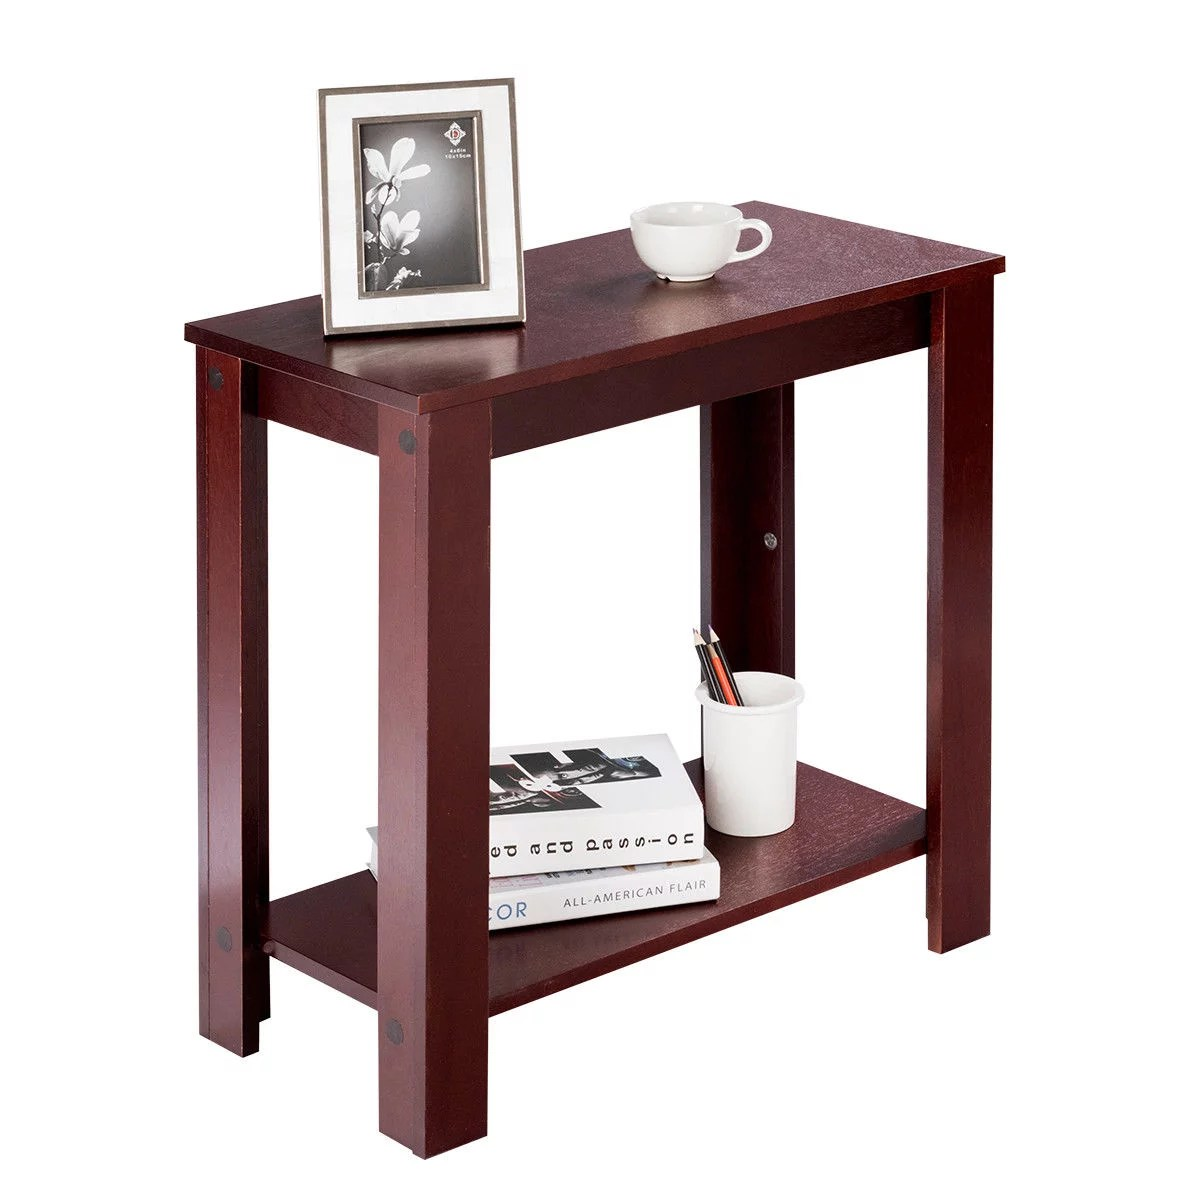 costway chair side table coffee sofa wooden end shelf living room furniture espresso